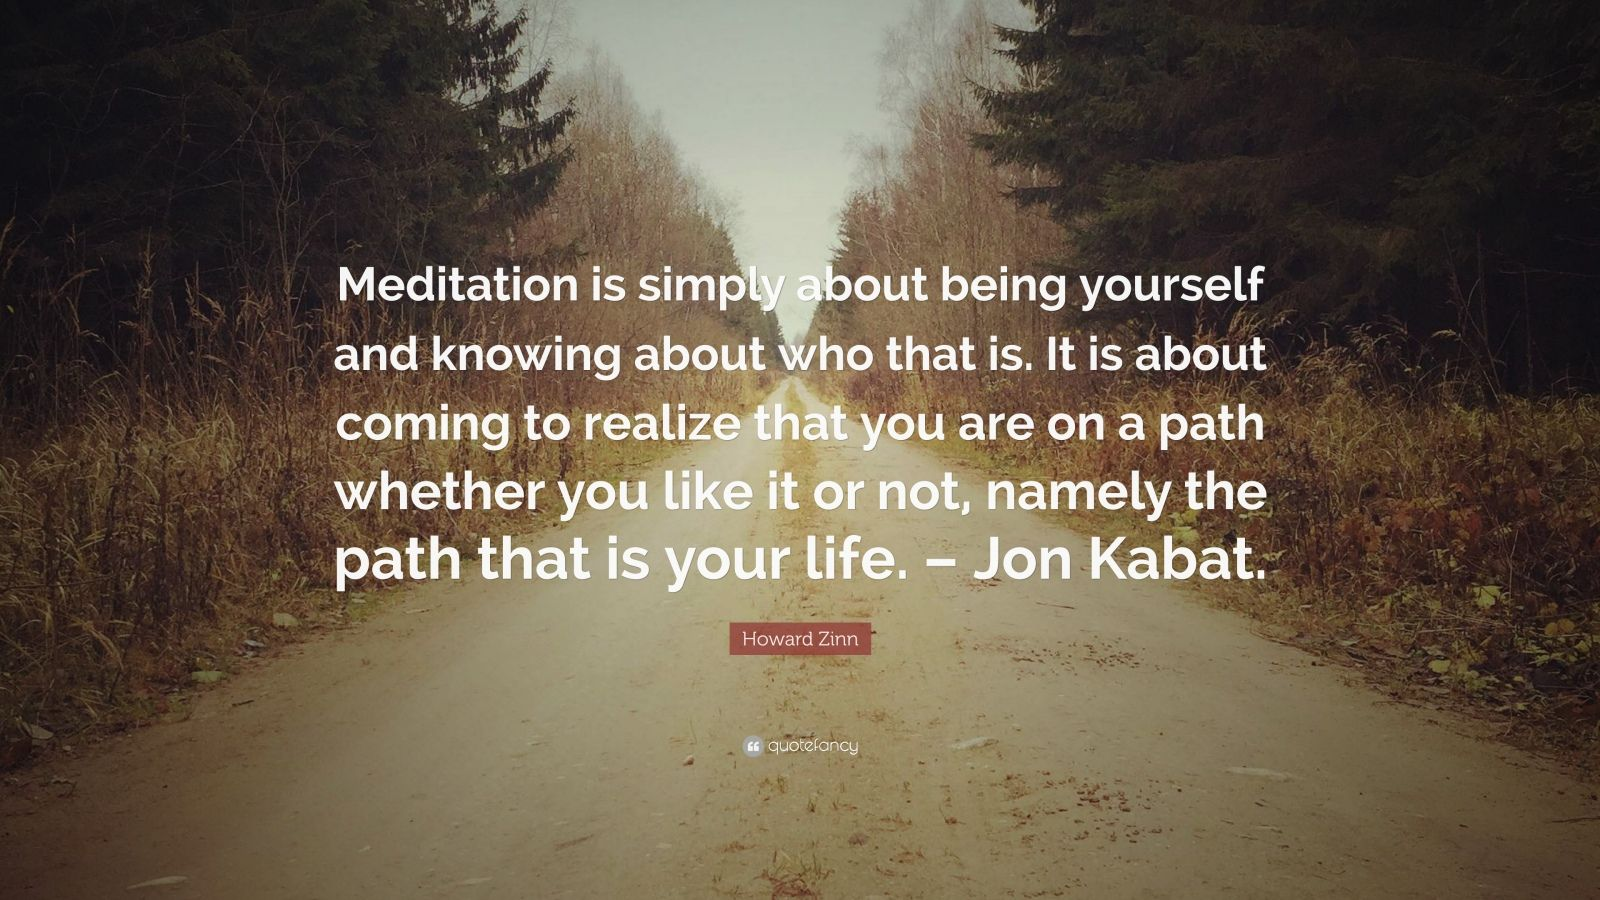 """Howard Zinn Quote: """"Meditation is simply about being yourself and knowing about who that is. It is about coming to realize that you are on a path whether you like it or not, namely the path that is your life. – Jon Kabat."""""""